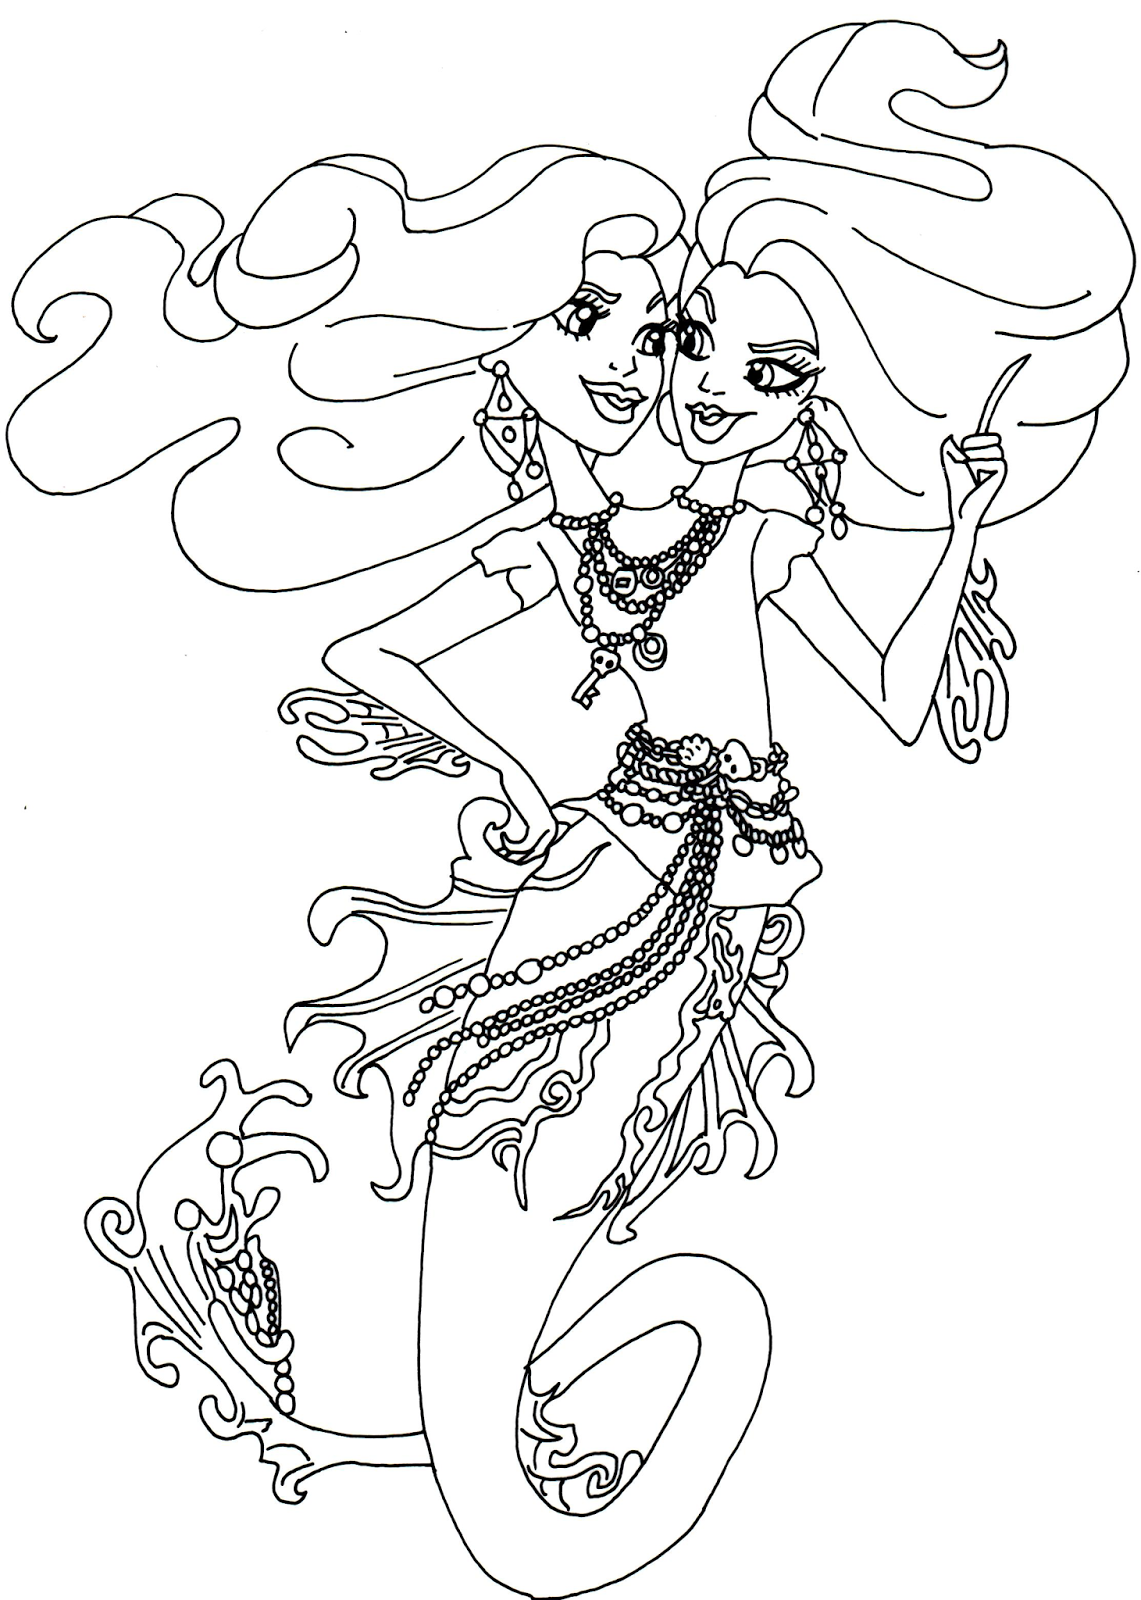 Free Printable Monster High Coloring Pages Peri And Pearl Serpentine Monster High Coloring Page